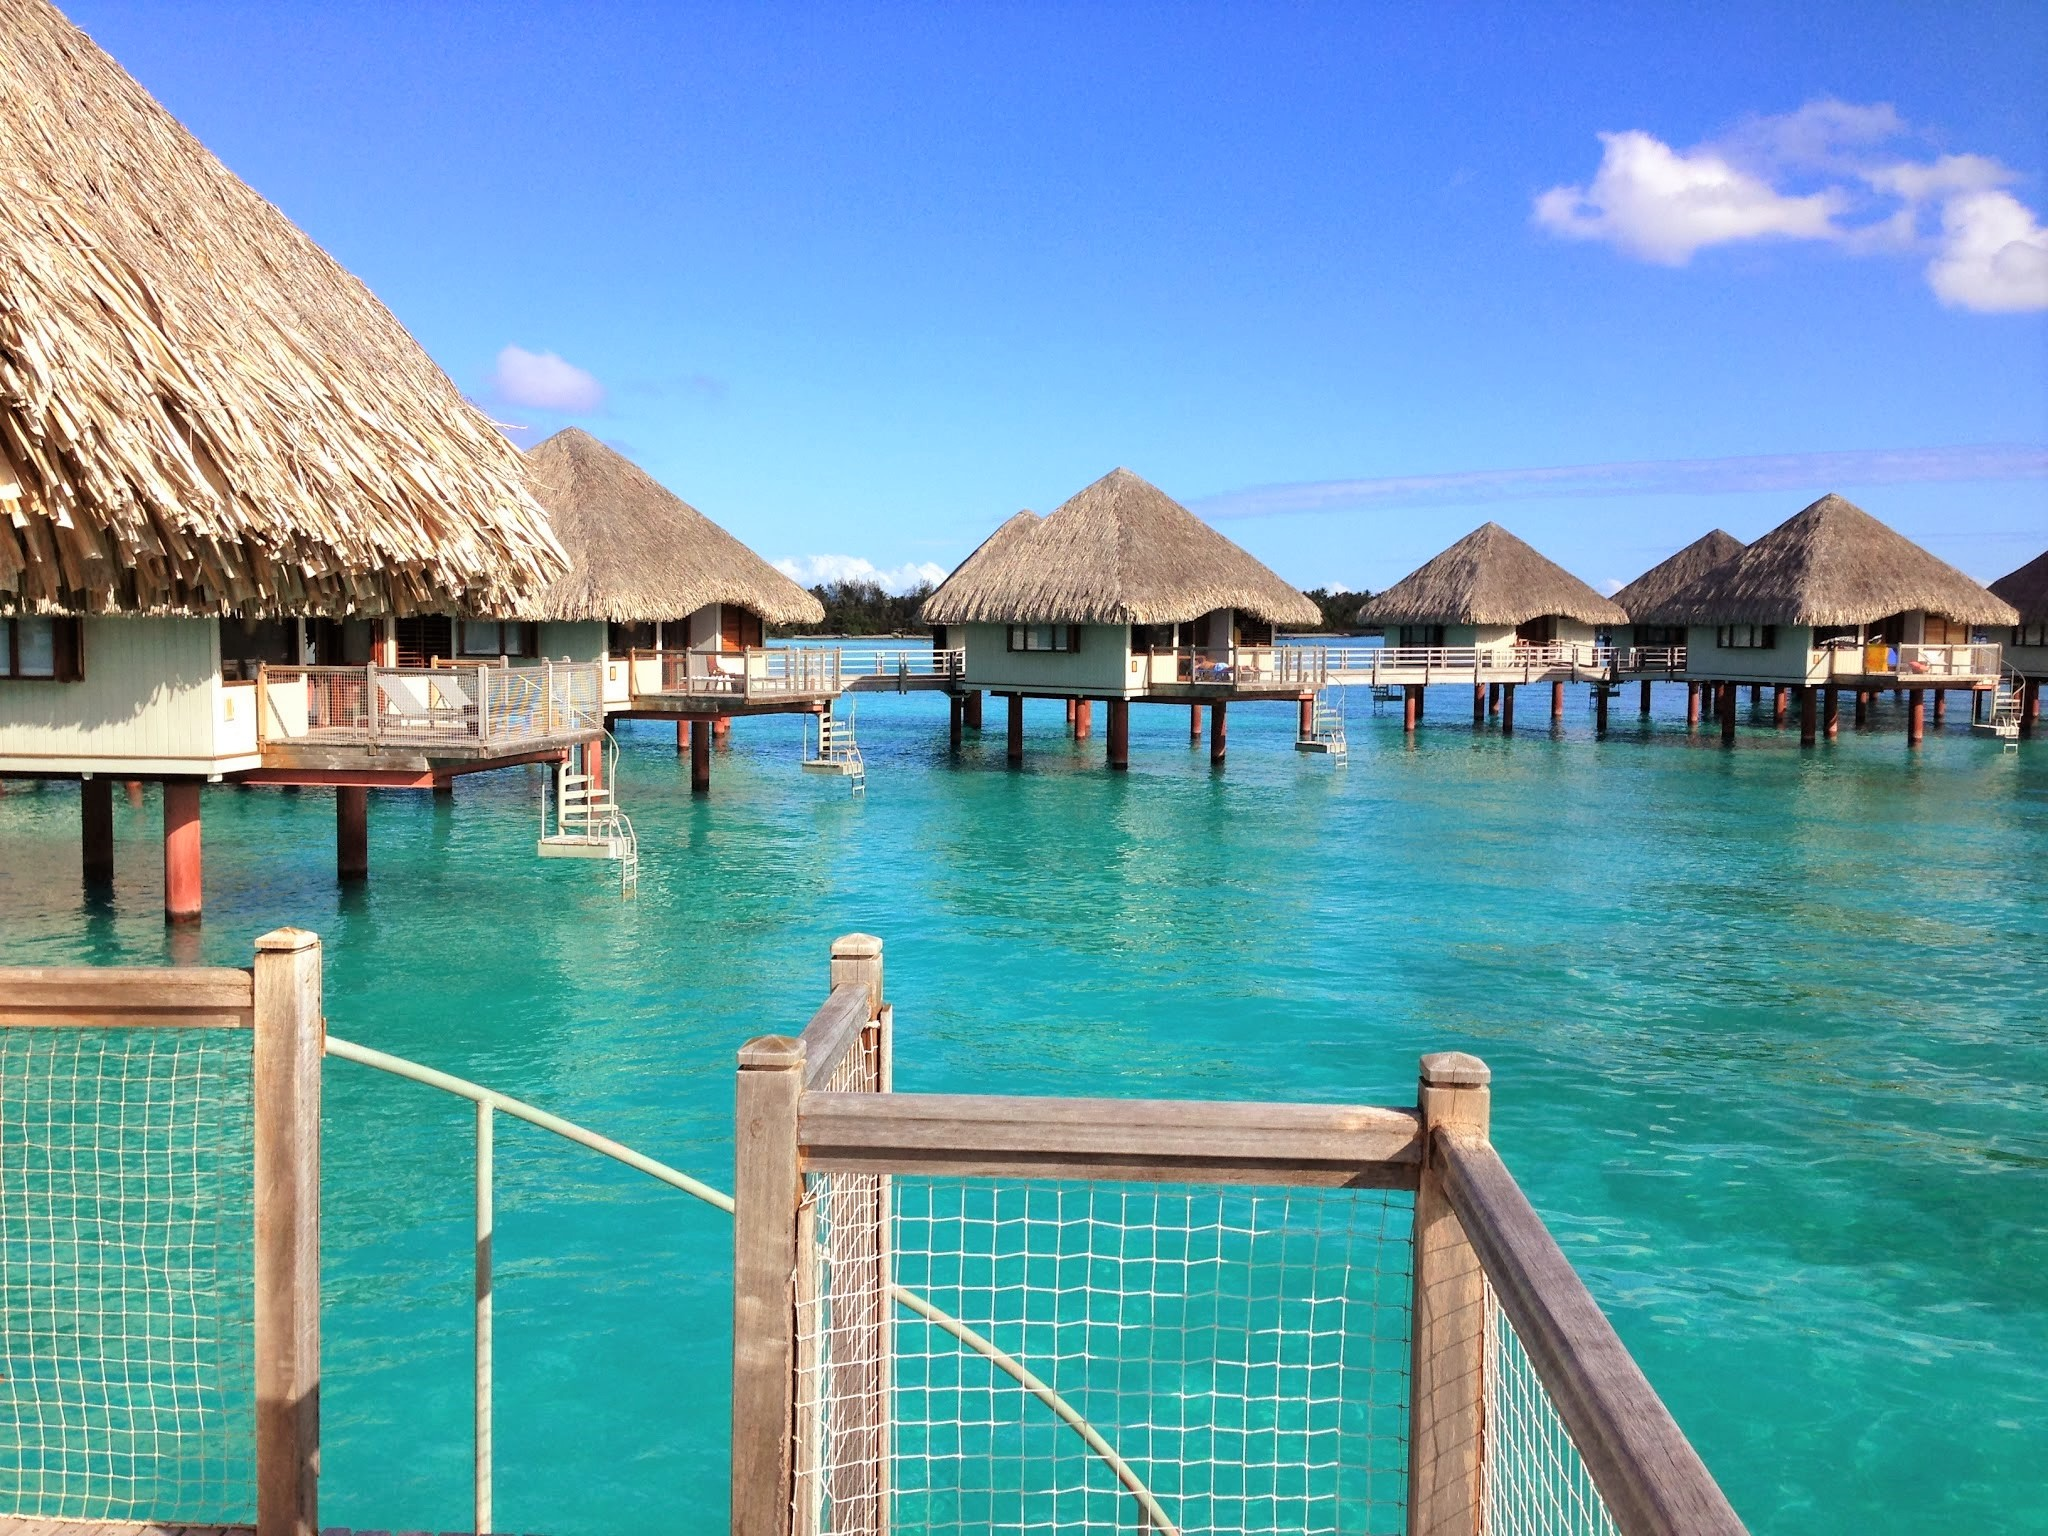 This was the view from our over-water bungalow at Le Meridien. I still can't get over that crystal clear water!